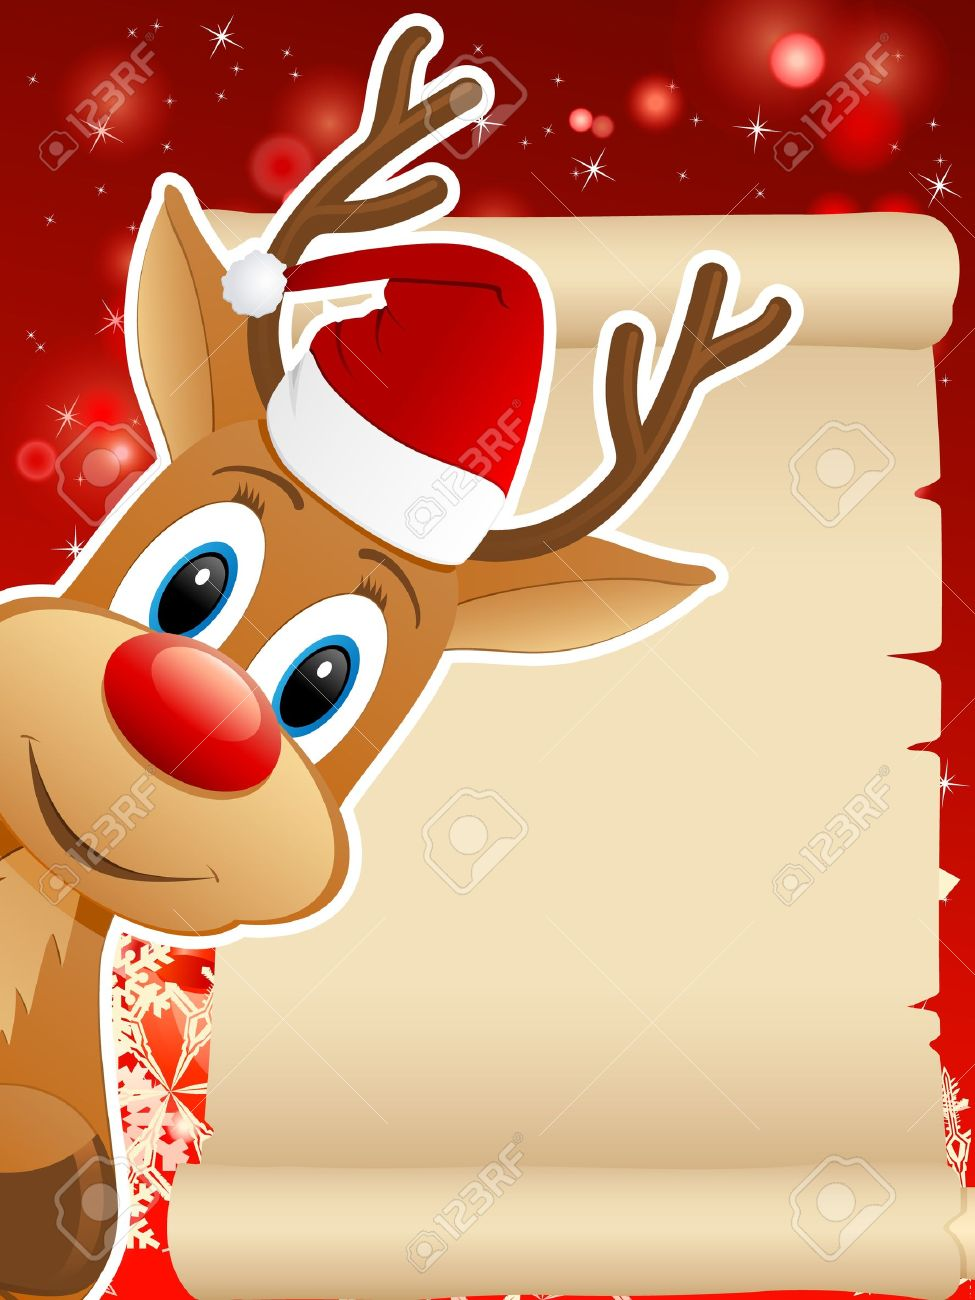 reindeer with santa hat and christmas background vector illustration stock vector 16599771 - Reindeer With Santa